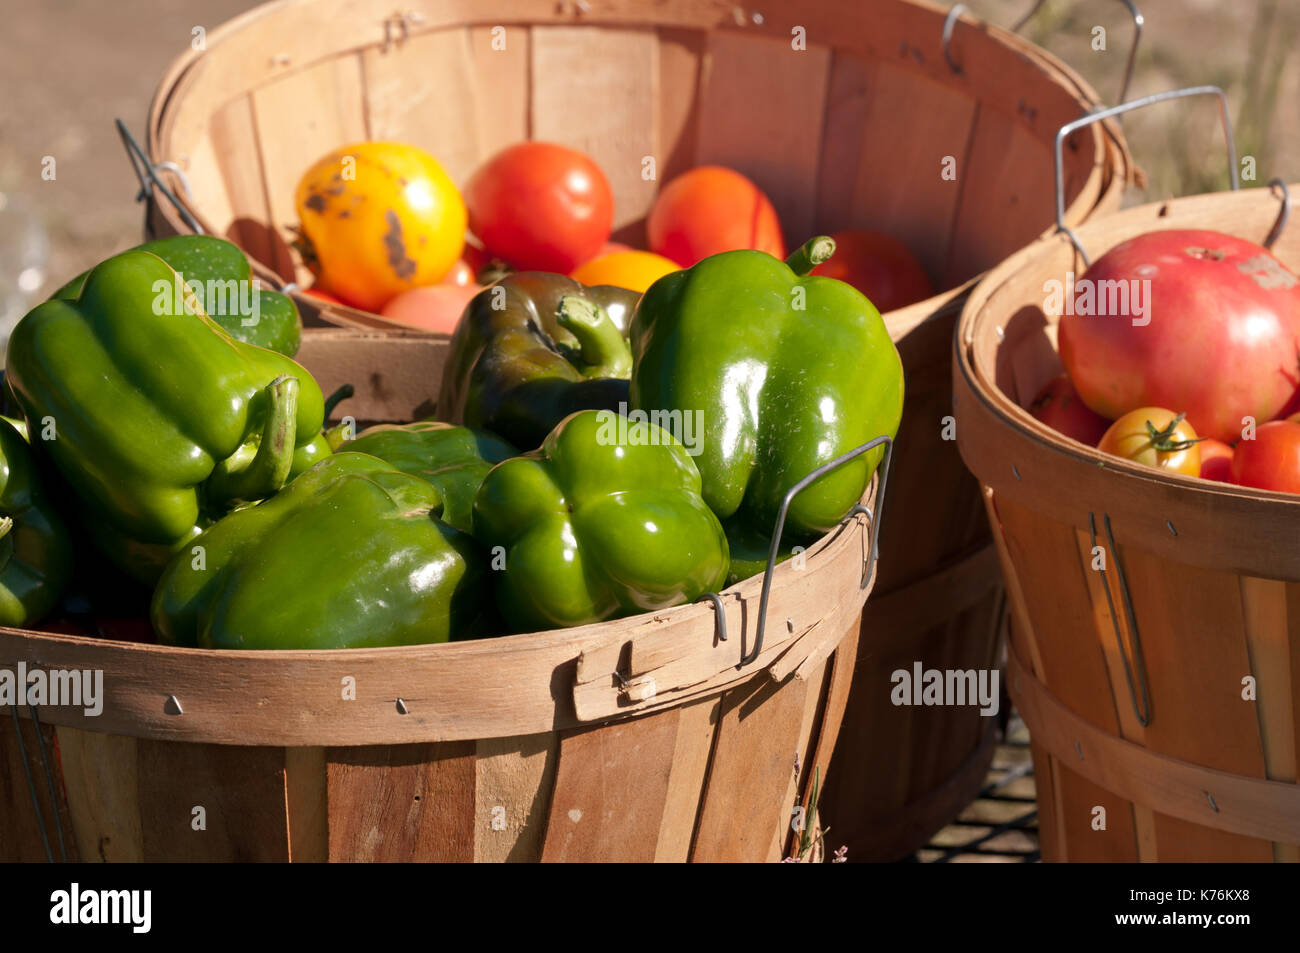 Bushel basket filled with freshly hand picked organic green peppers at a local farm. - Stock Image